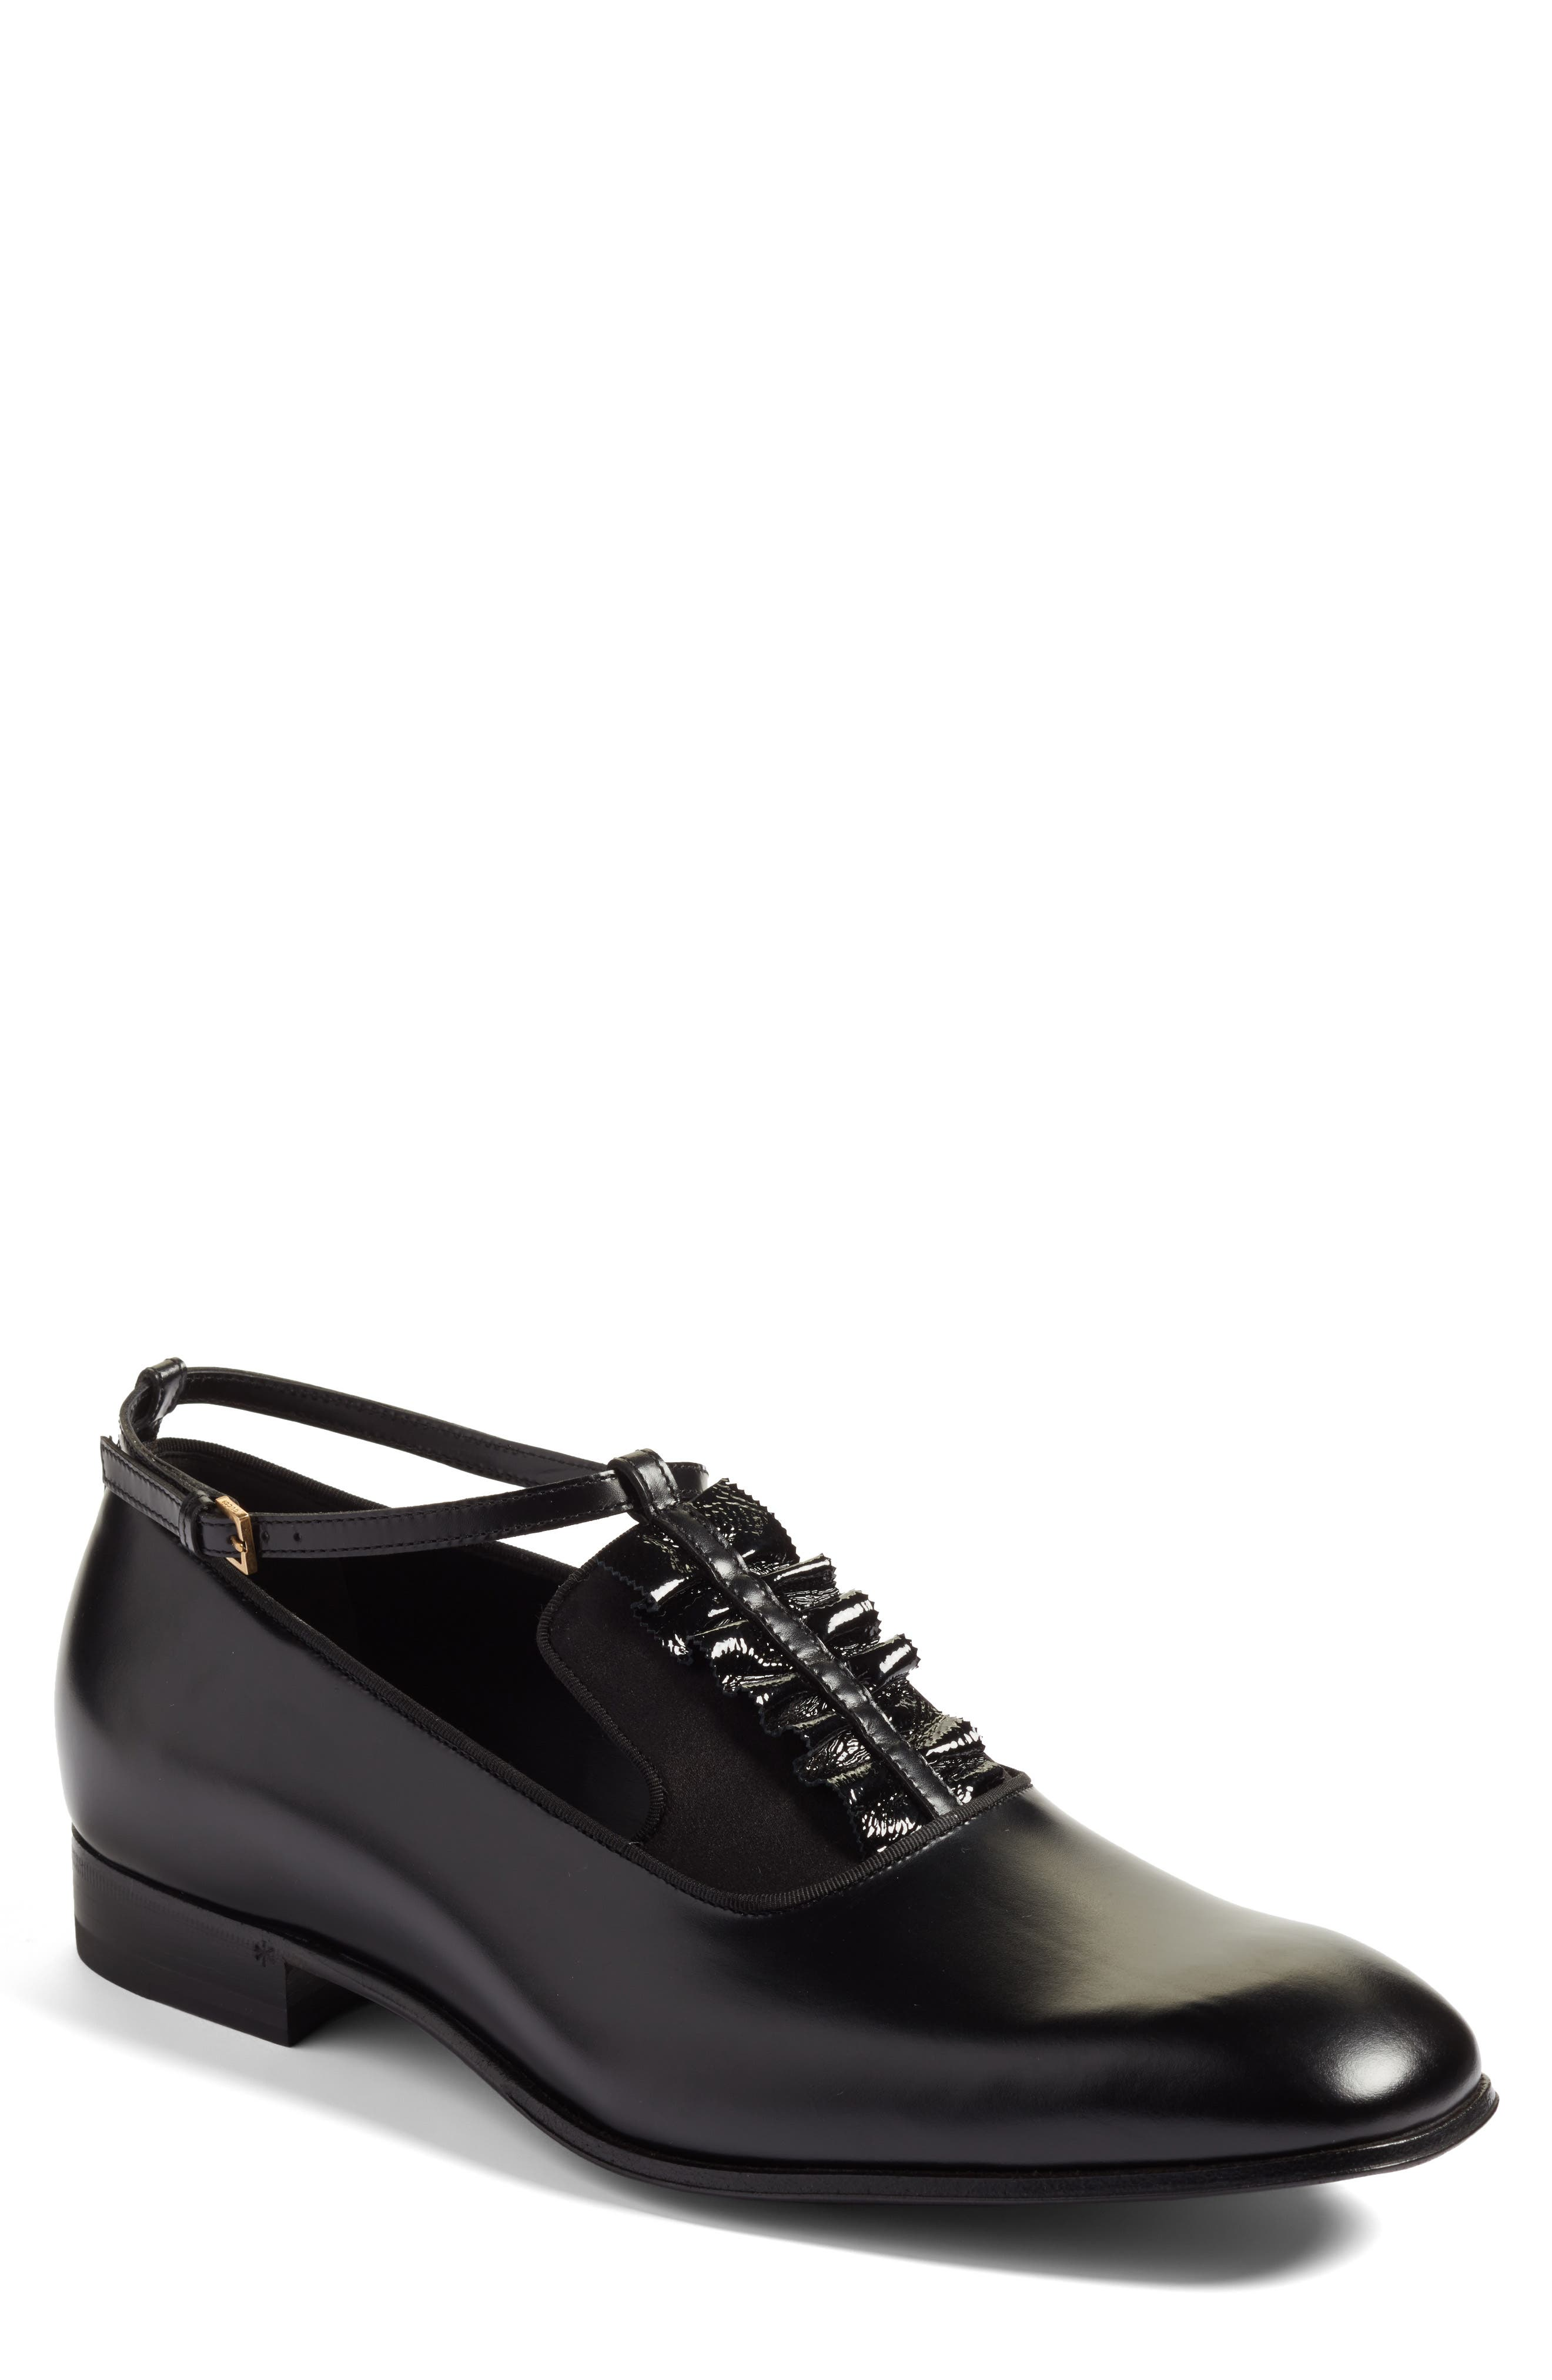 Thesis Loafer,                         Main,                         color, 001